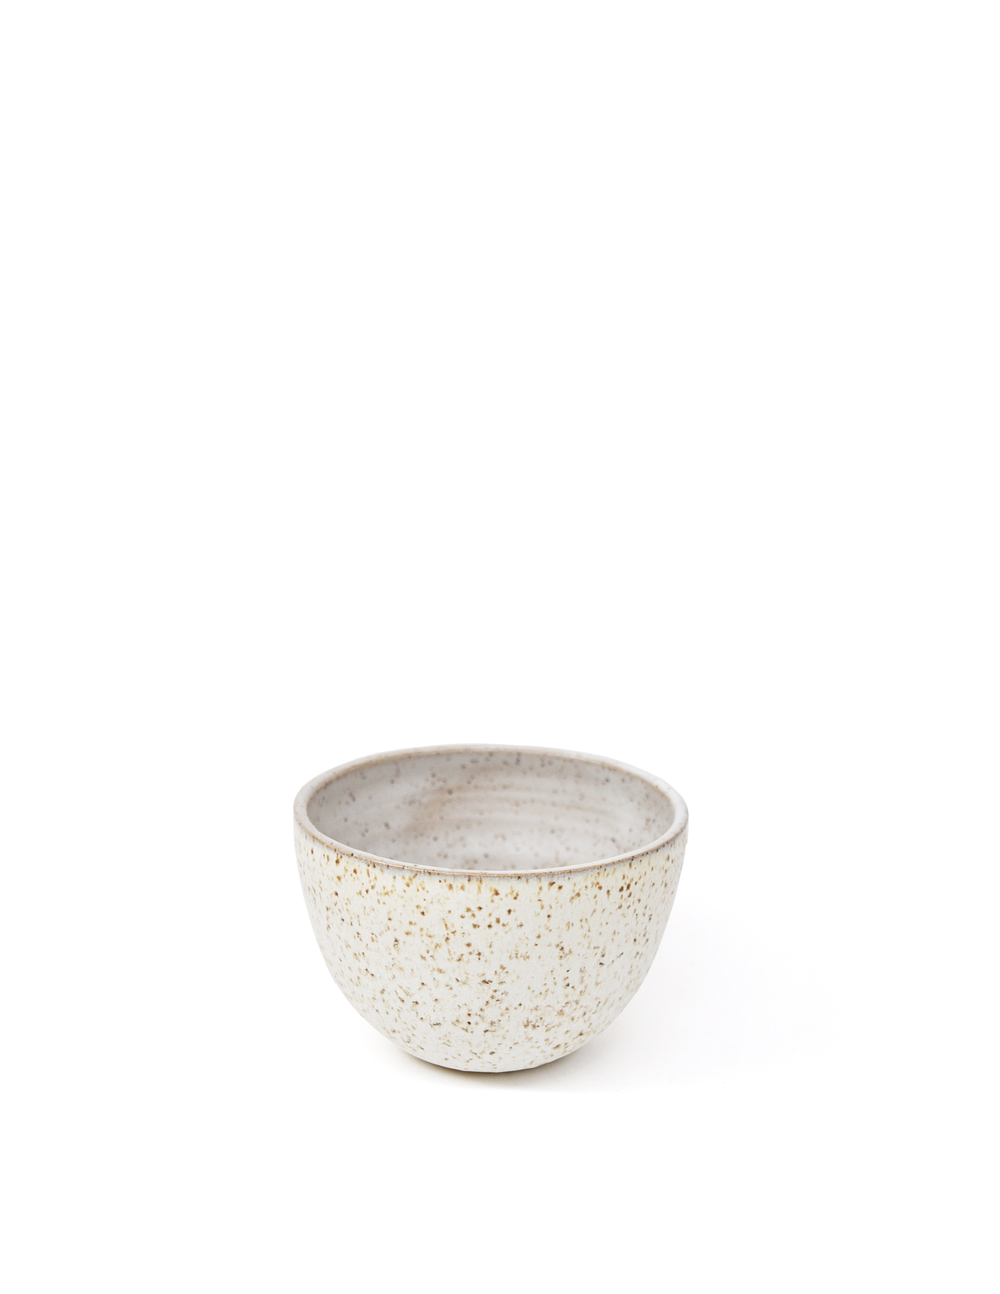 ricebowl_speckled_1.jpg